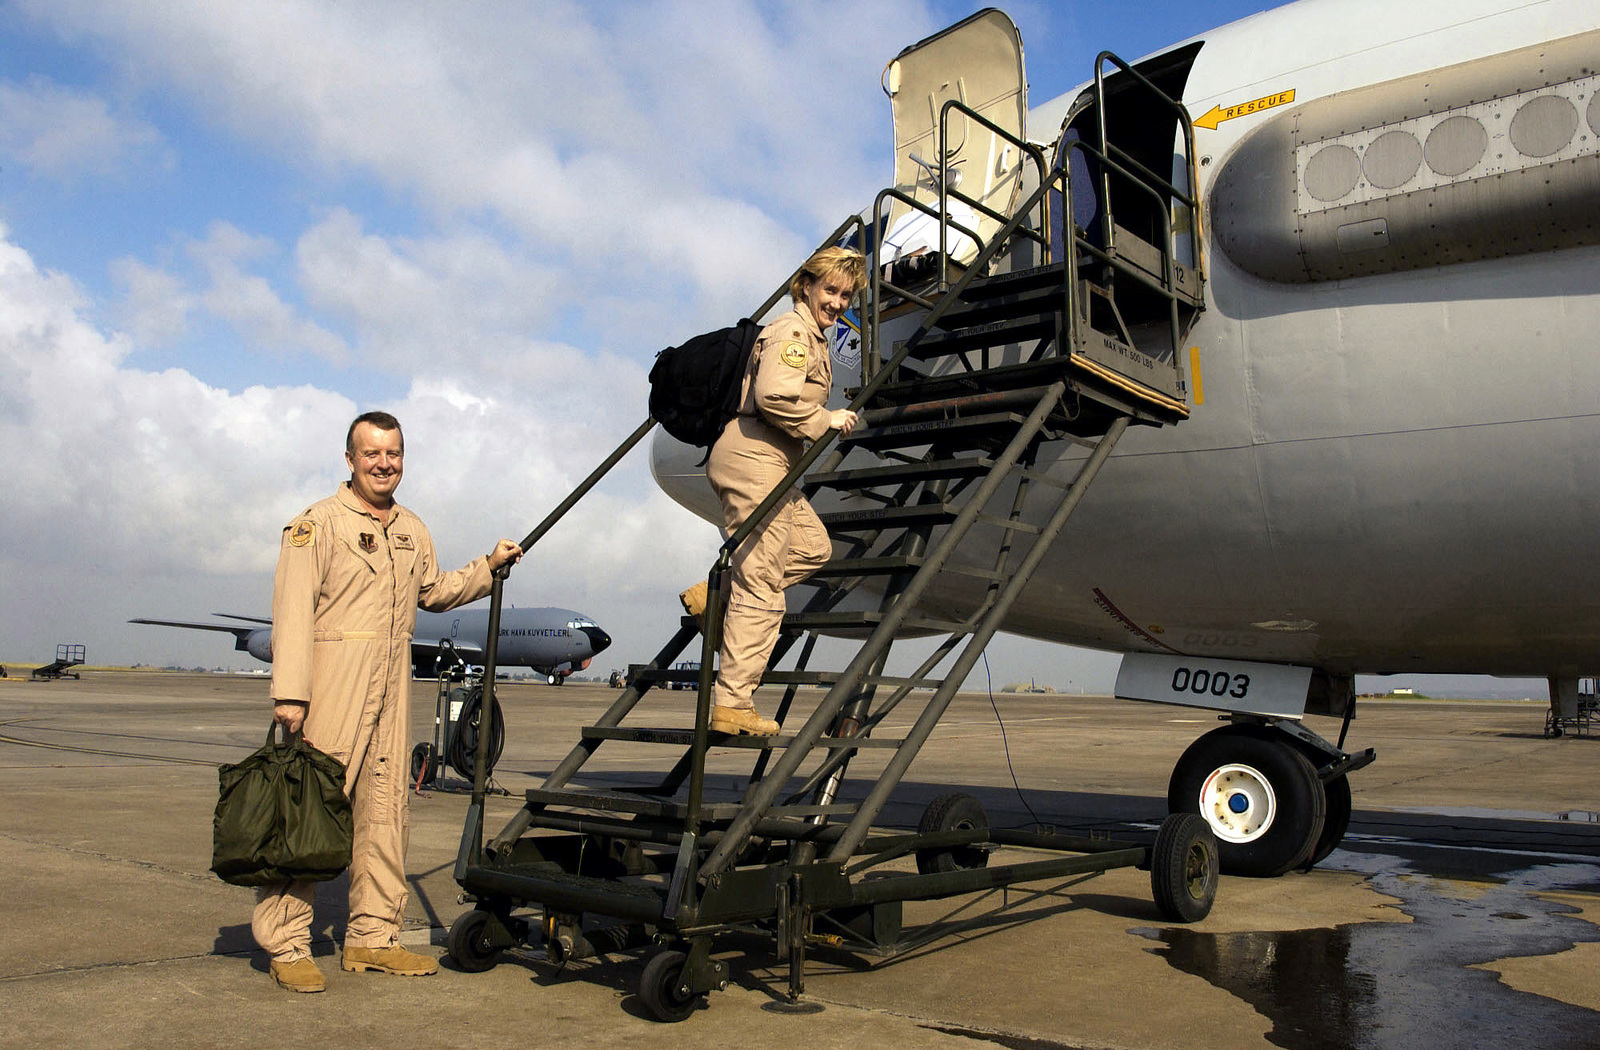 US Air Force (USAF) Major (MAJ) Chuck Diven and USAF MAJ Julie Kruse, E-3A Sentry Airborne Warning and Control System (AWACS) aircraft Pilots assigned to the 970th Expeditionary Air Borne Control Squadron, board their aircraft to perform pre-flight inspections before launch a mission from Incirlik Air Base (AB), Turkey